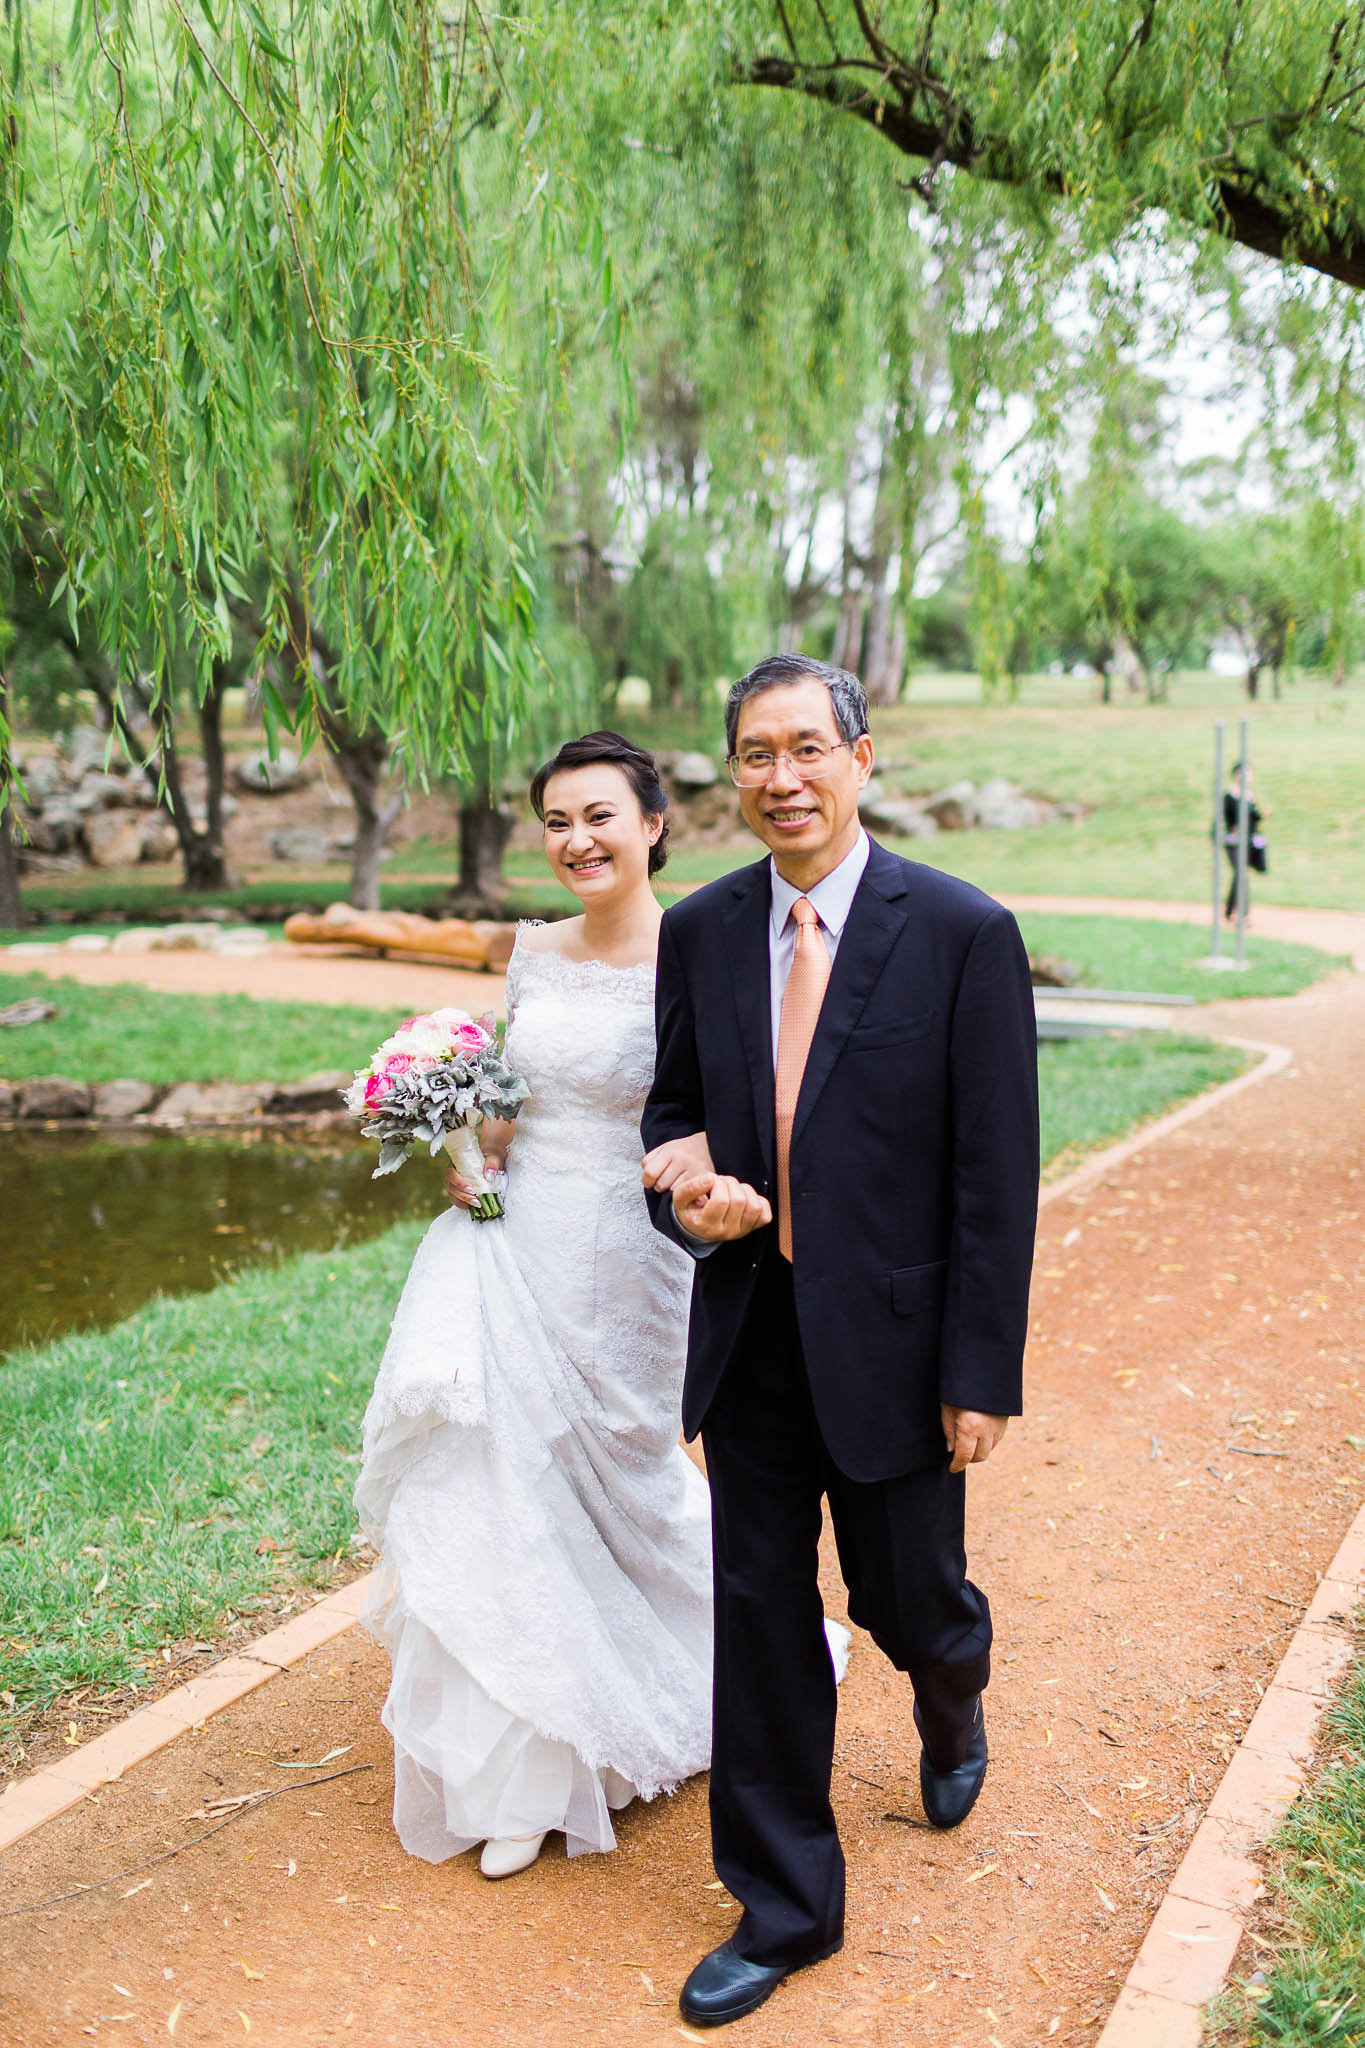 Bride and Father walking down the aisle to be married - Western Park Canberra Wedding Photography